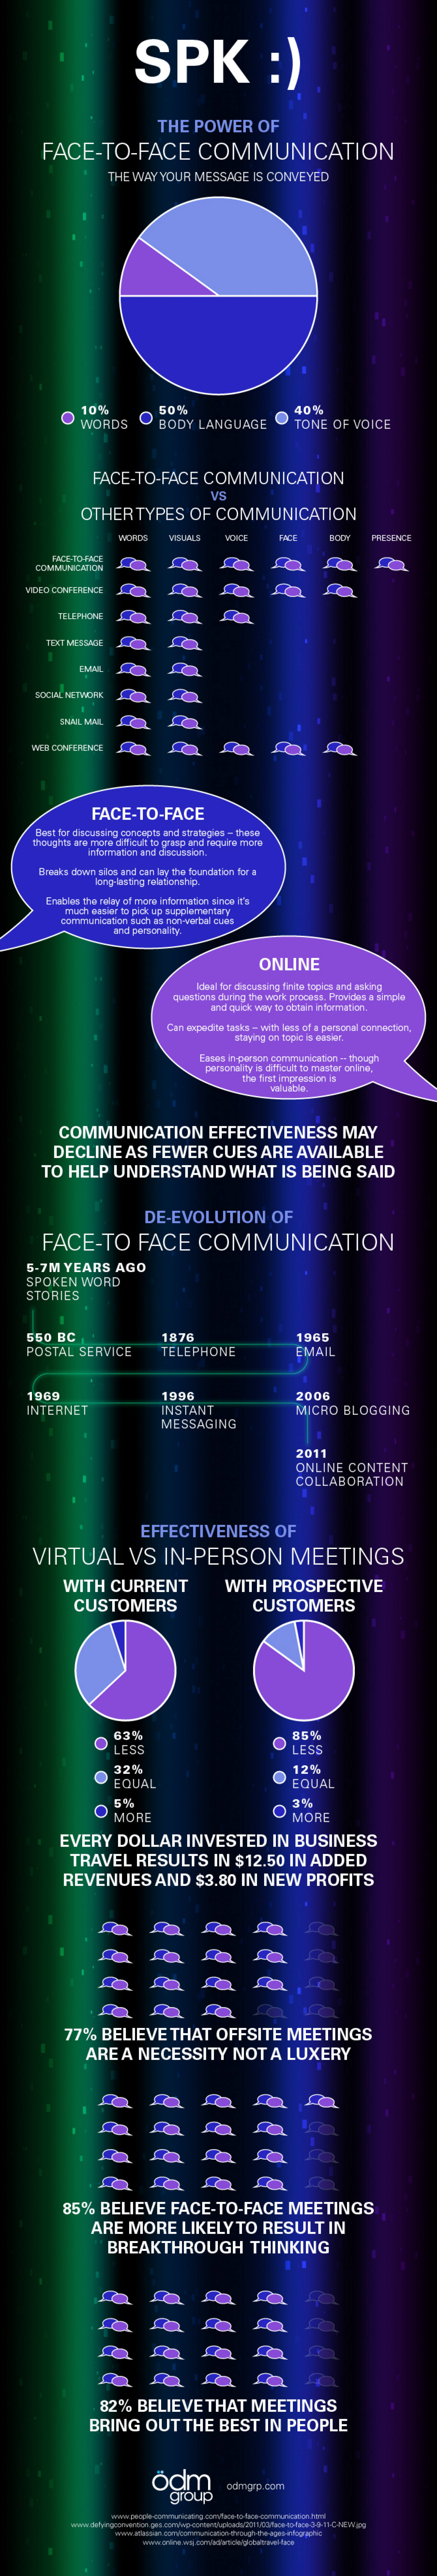 SPK The Power of Face-to-Face Communication Infographic